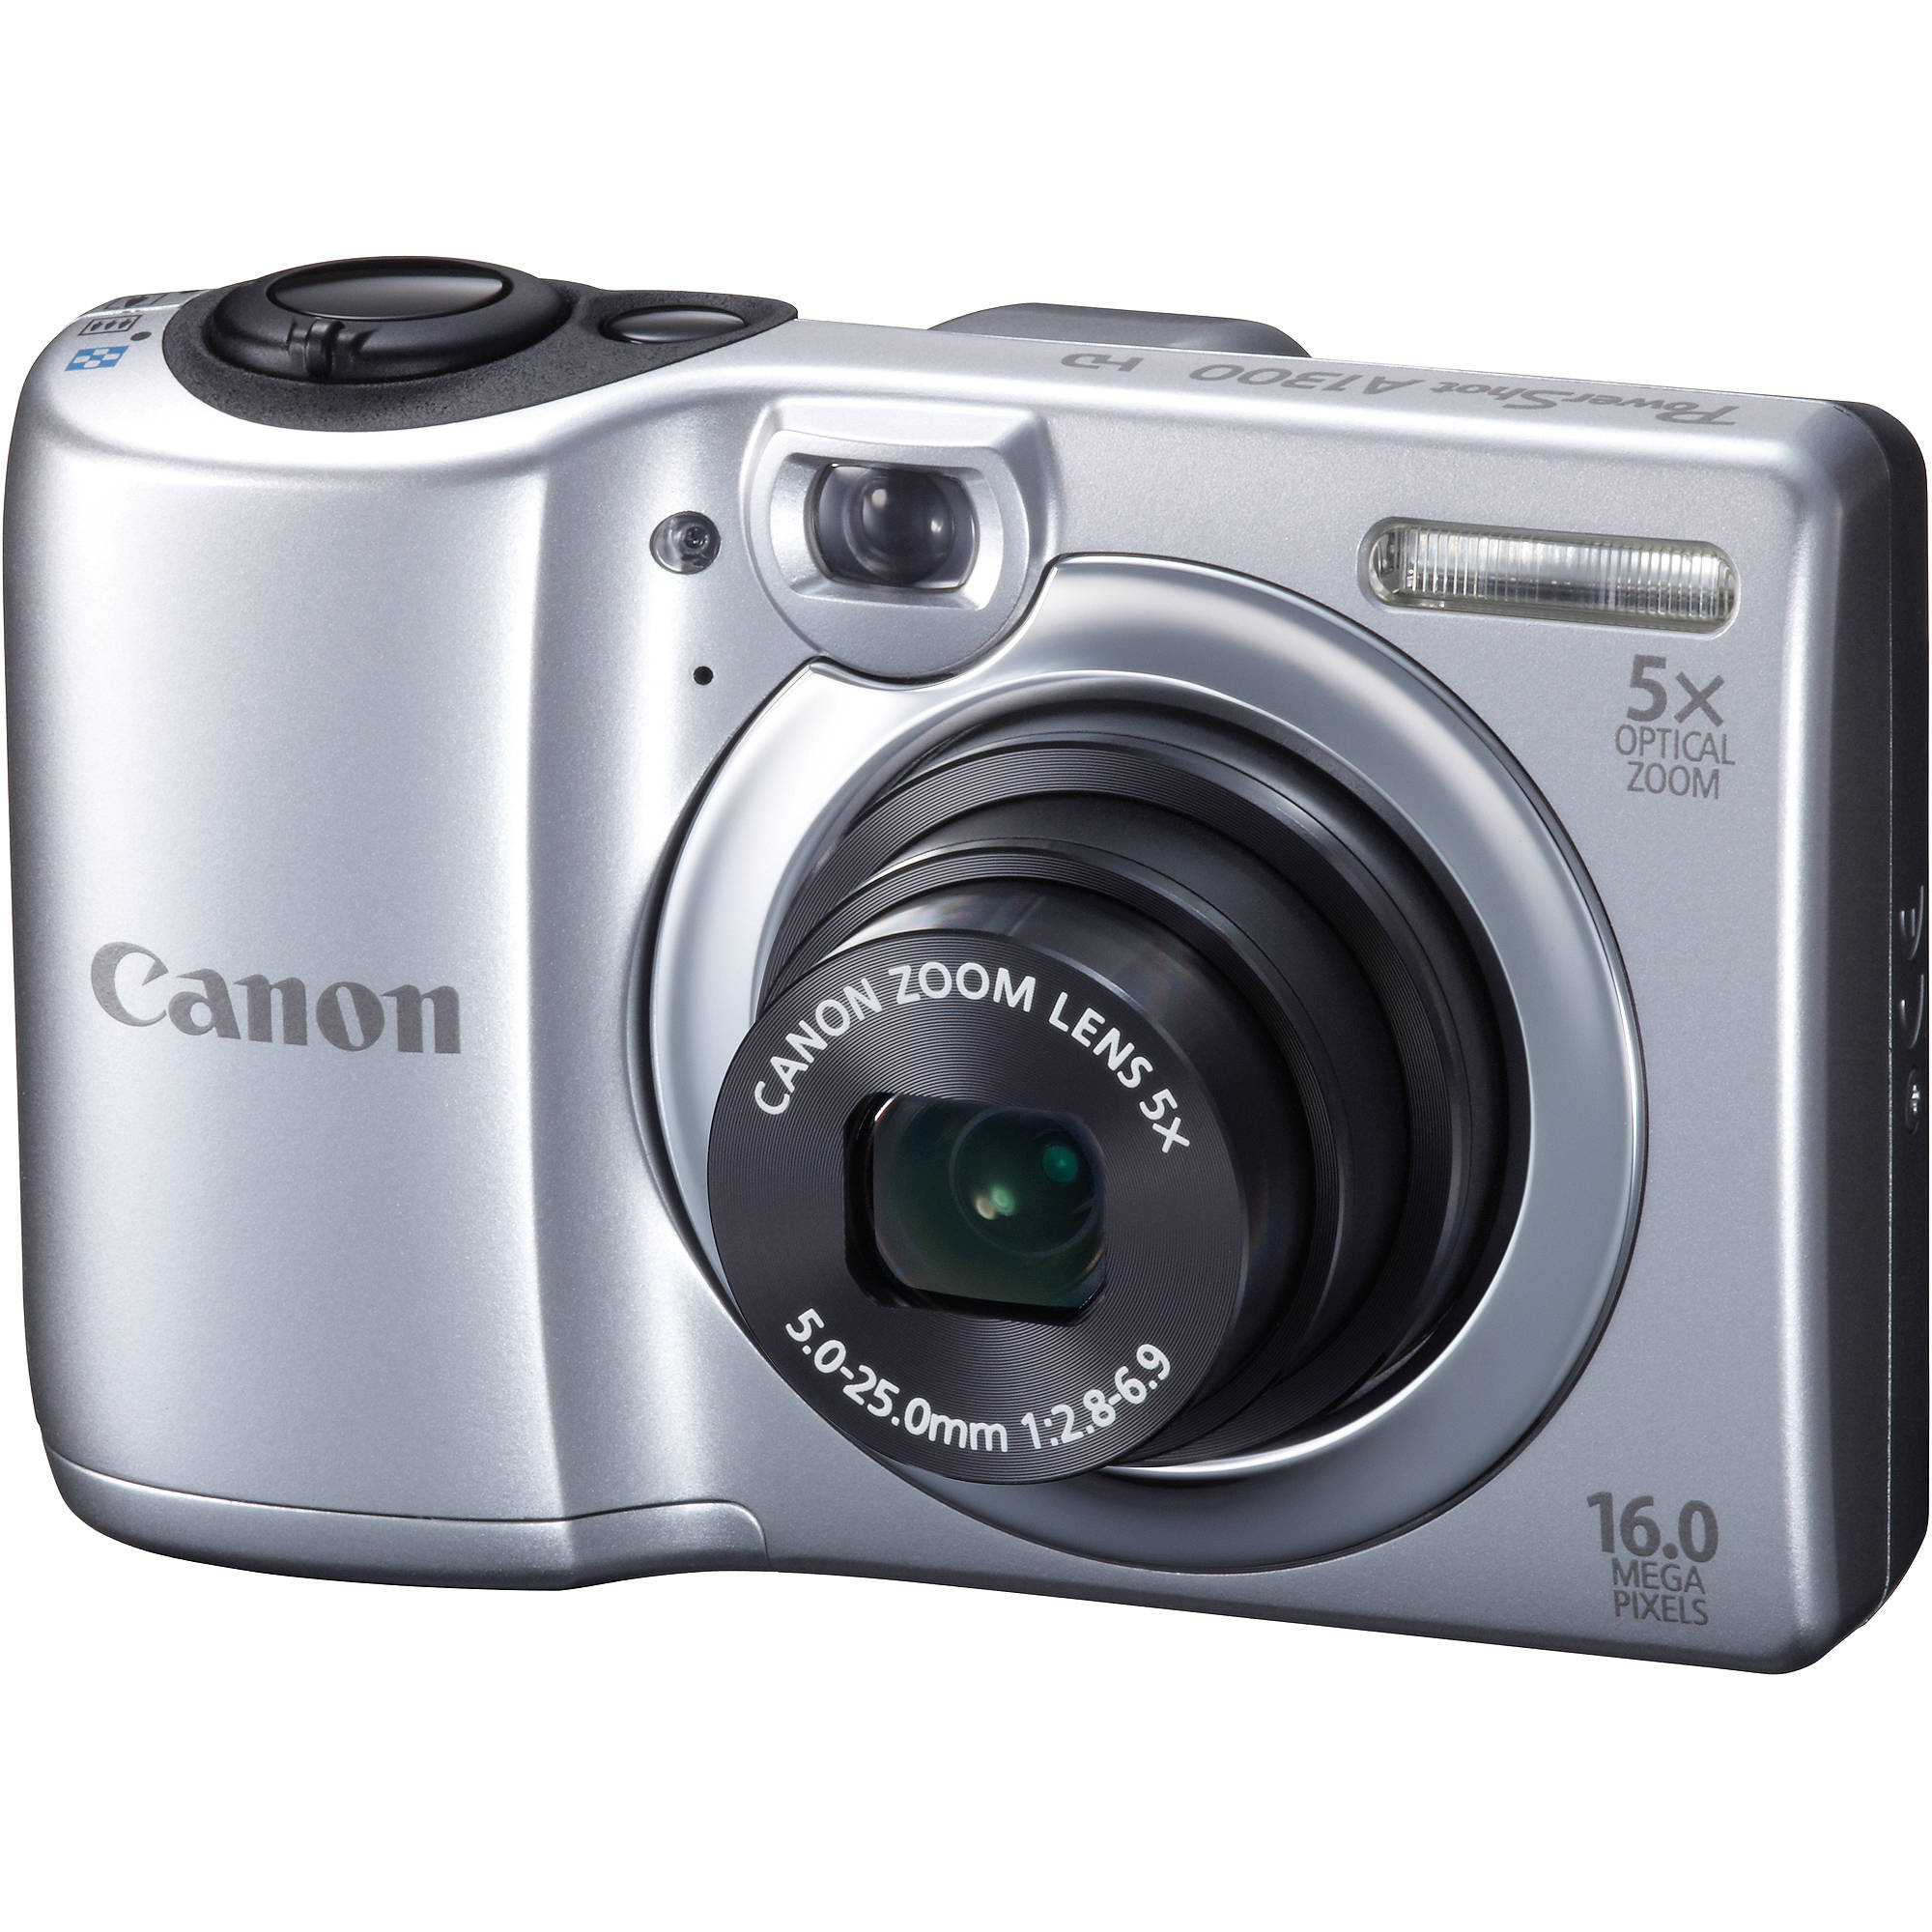 canon powershot a1300 digital camera silver 6177b001 b h photo rh bhphotovideo com canon powershot a1300 digital camera manual Review Canon PowerShot A1300